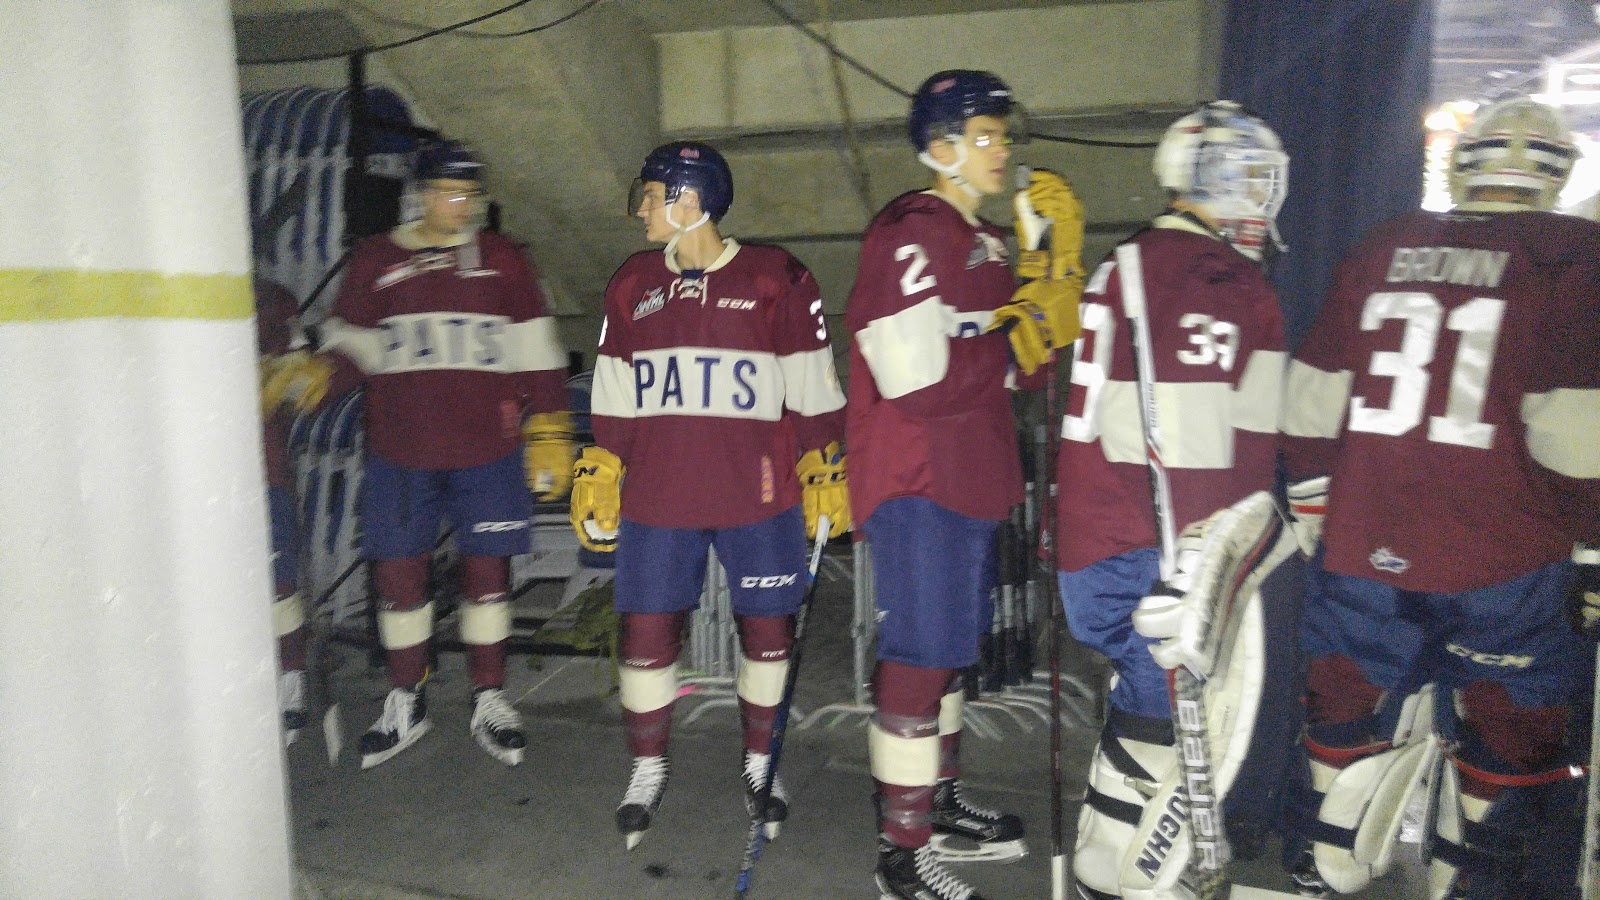 The Regina Pats Hockey Club unveiled their 100th Anniversary Season jerseys  at their home opener on Saturday night at the Brandt Centre. f1fc98ed0